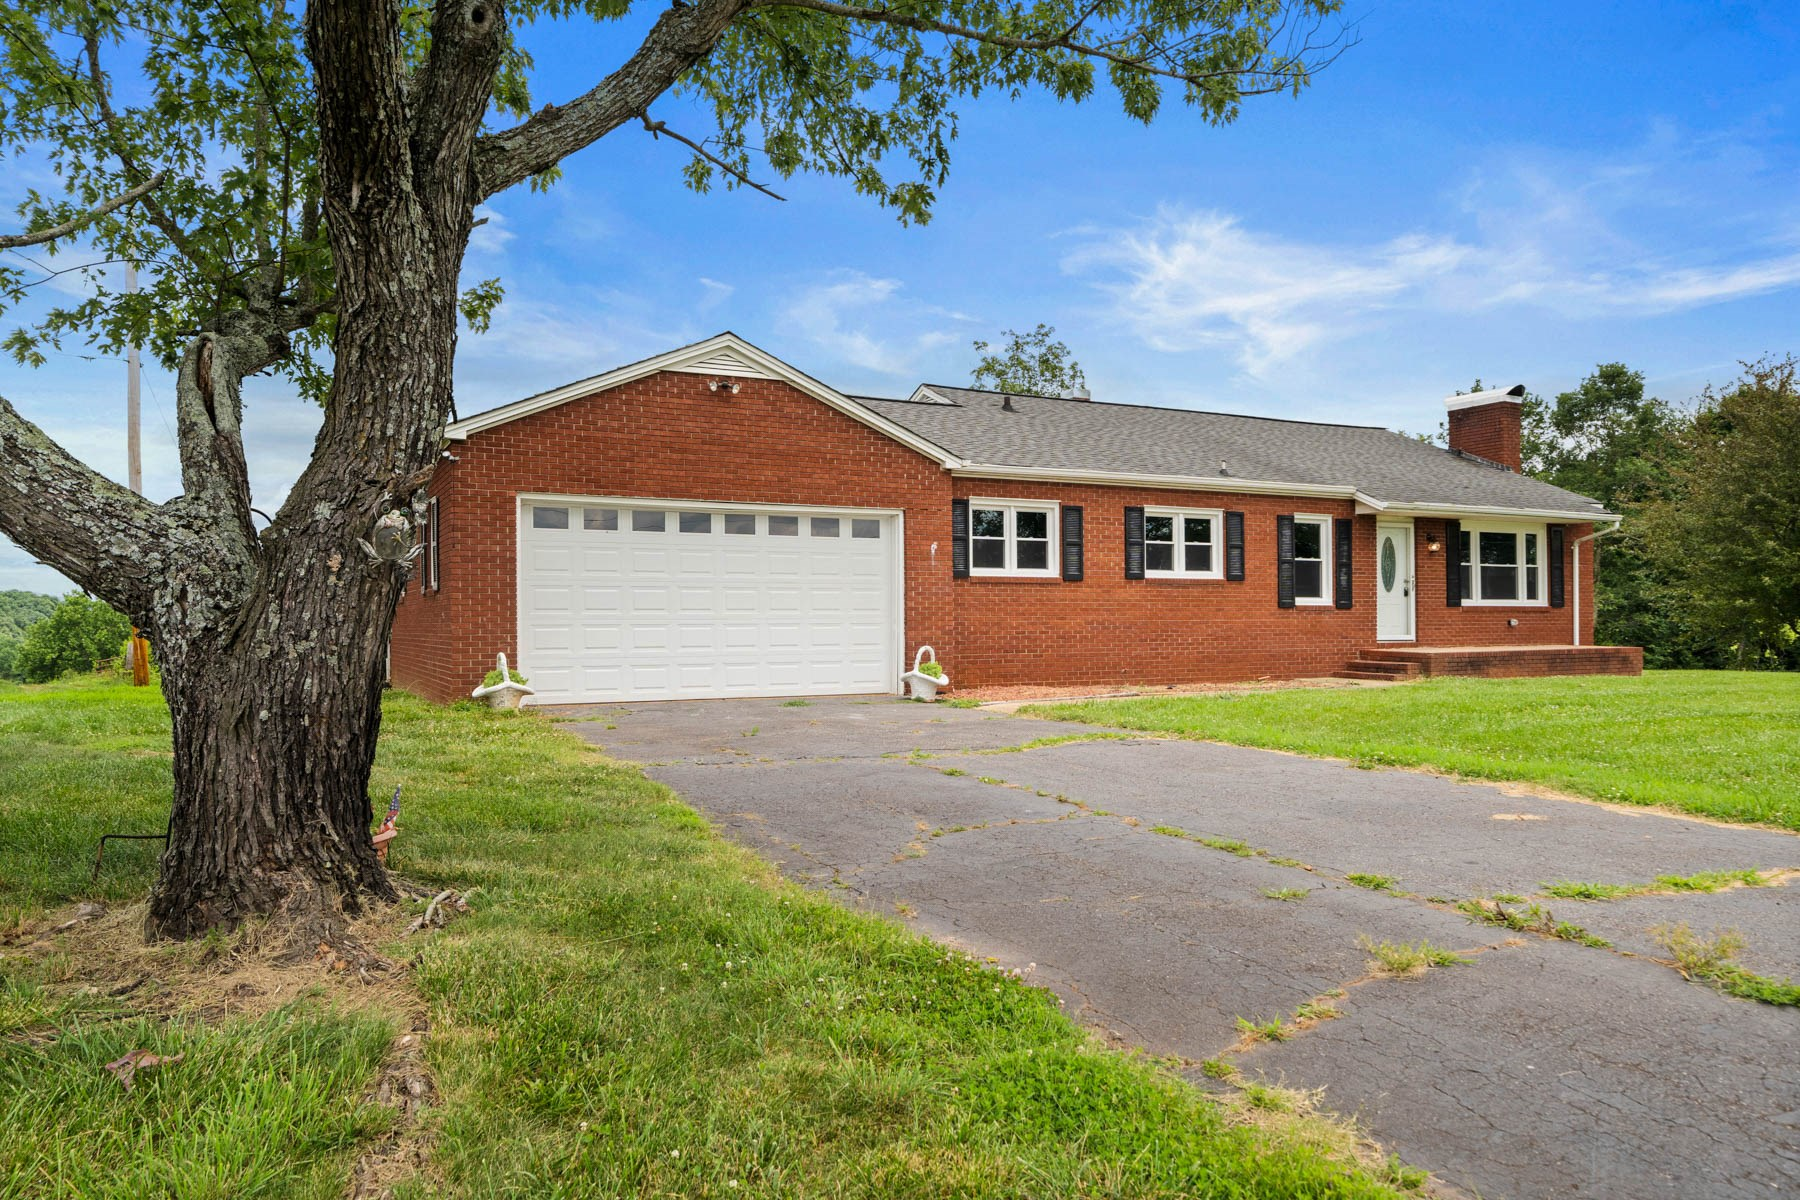 1.5 Acres with 3Bed/2Bath Brick Ranch w/ View For Sale in NC